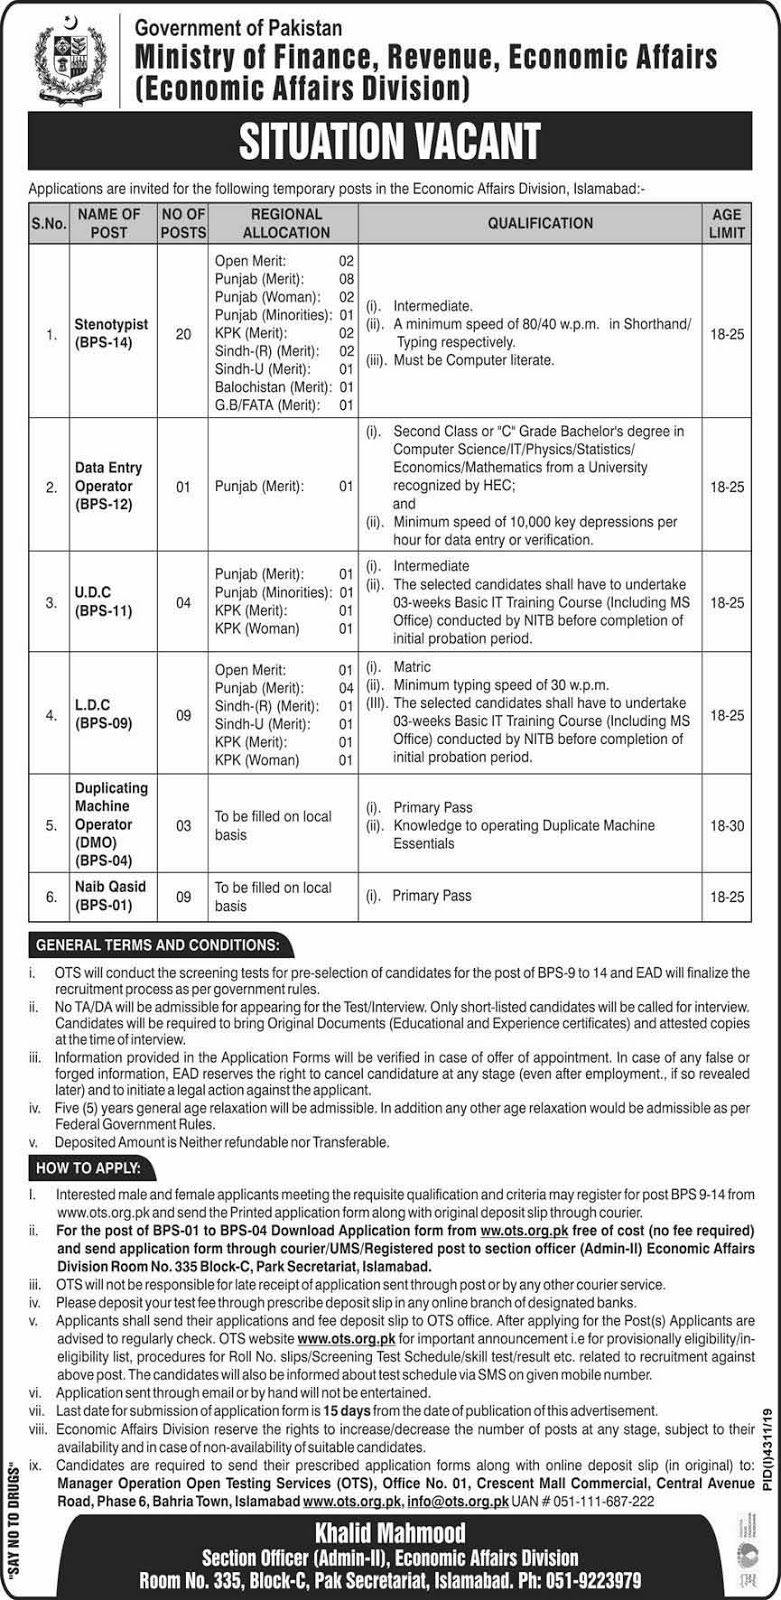 Govt of Pakistan Ministry of Finance Jobs For Data Entry Operator, Naib Qasid and Others February 2020 (46 Posts)